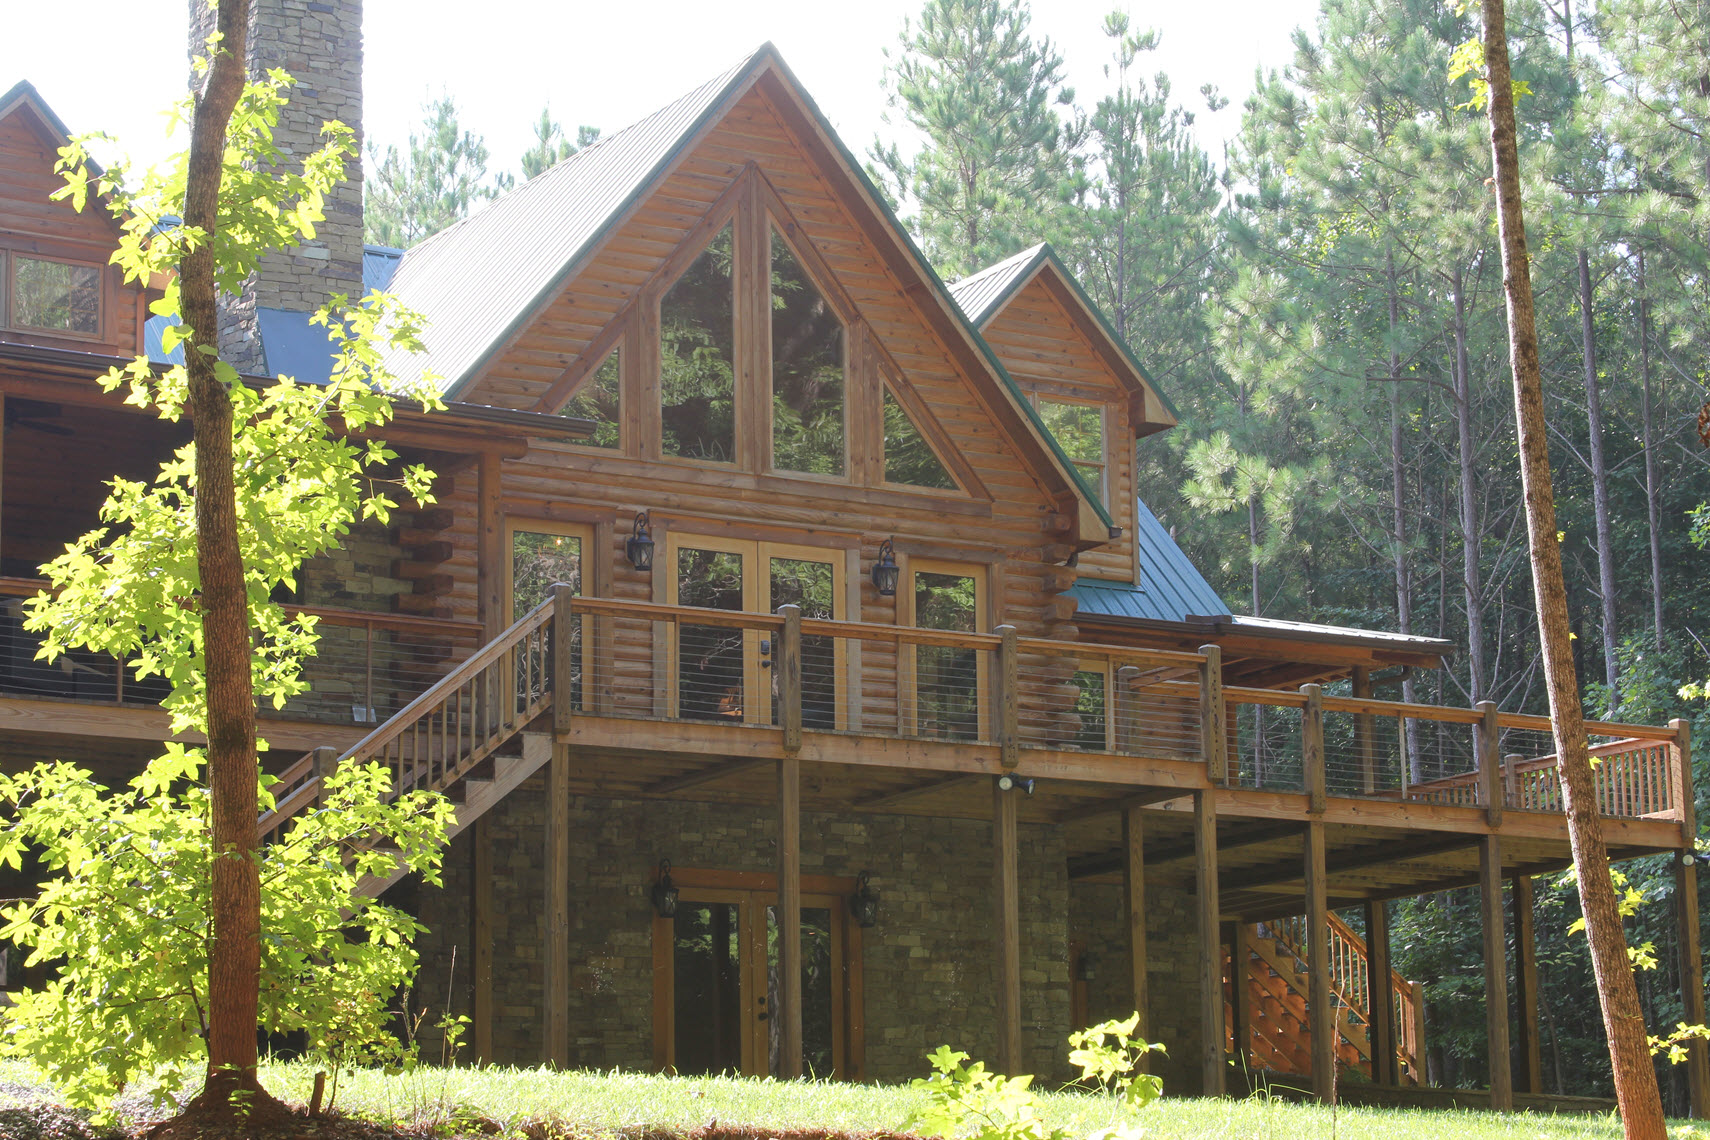 Southland log homes wins 2017 nahb design awards for Southland log homes